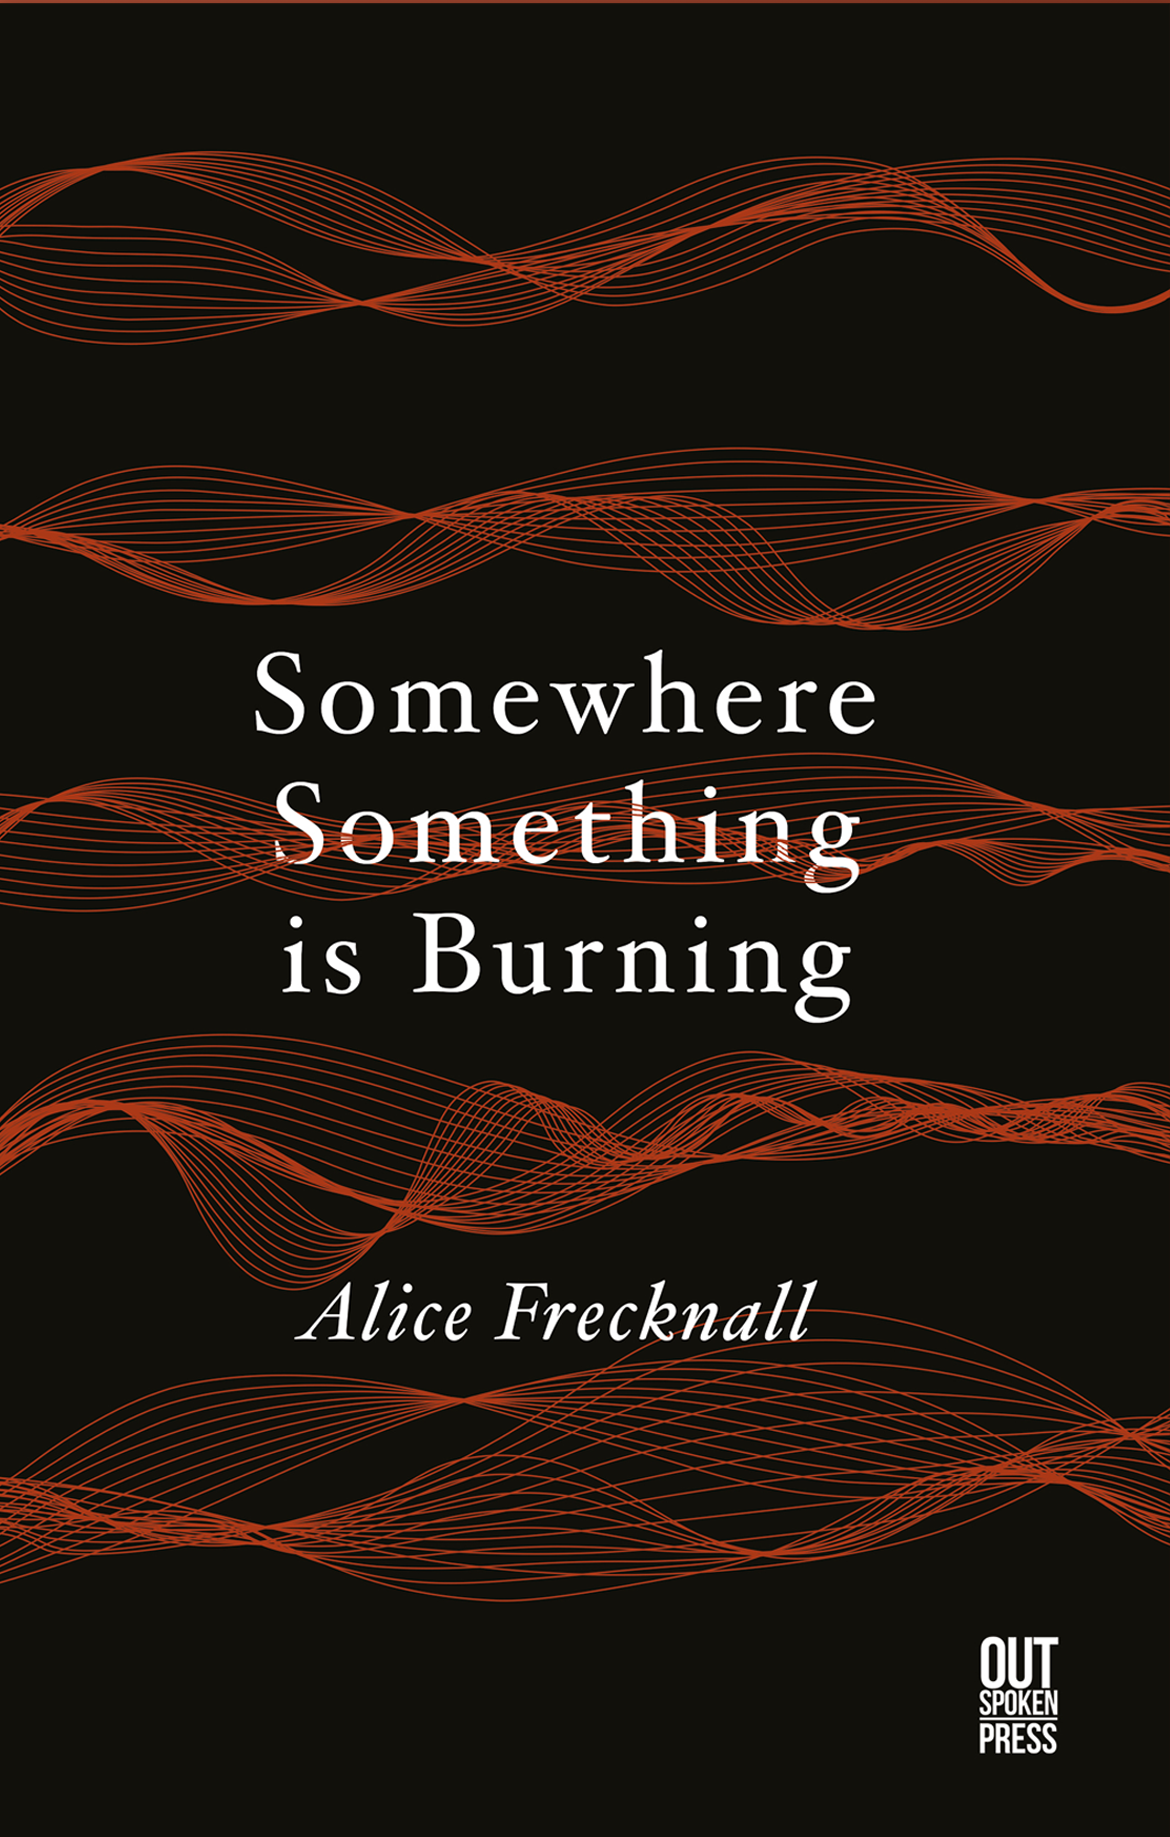 Somewhere something is burning - book cover